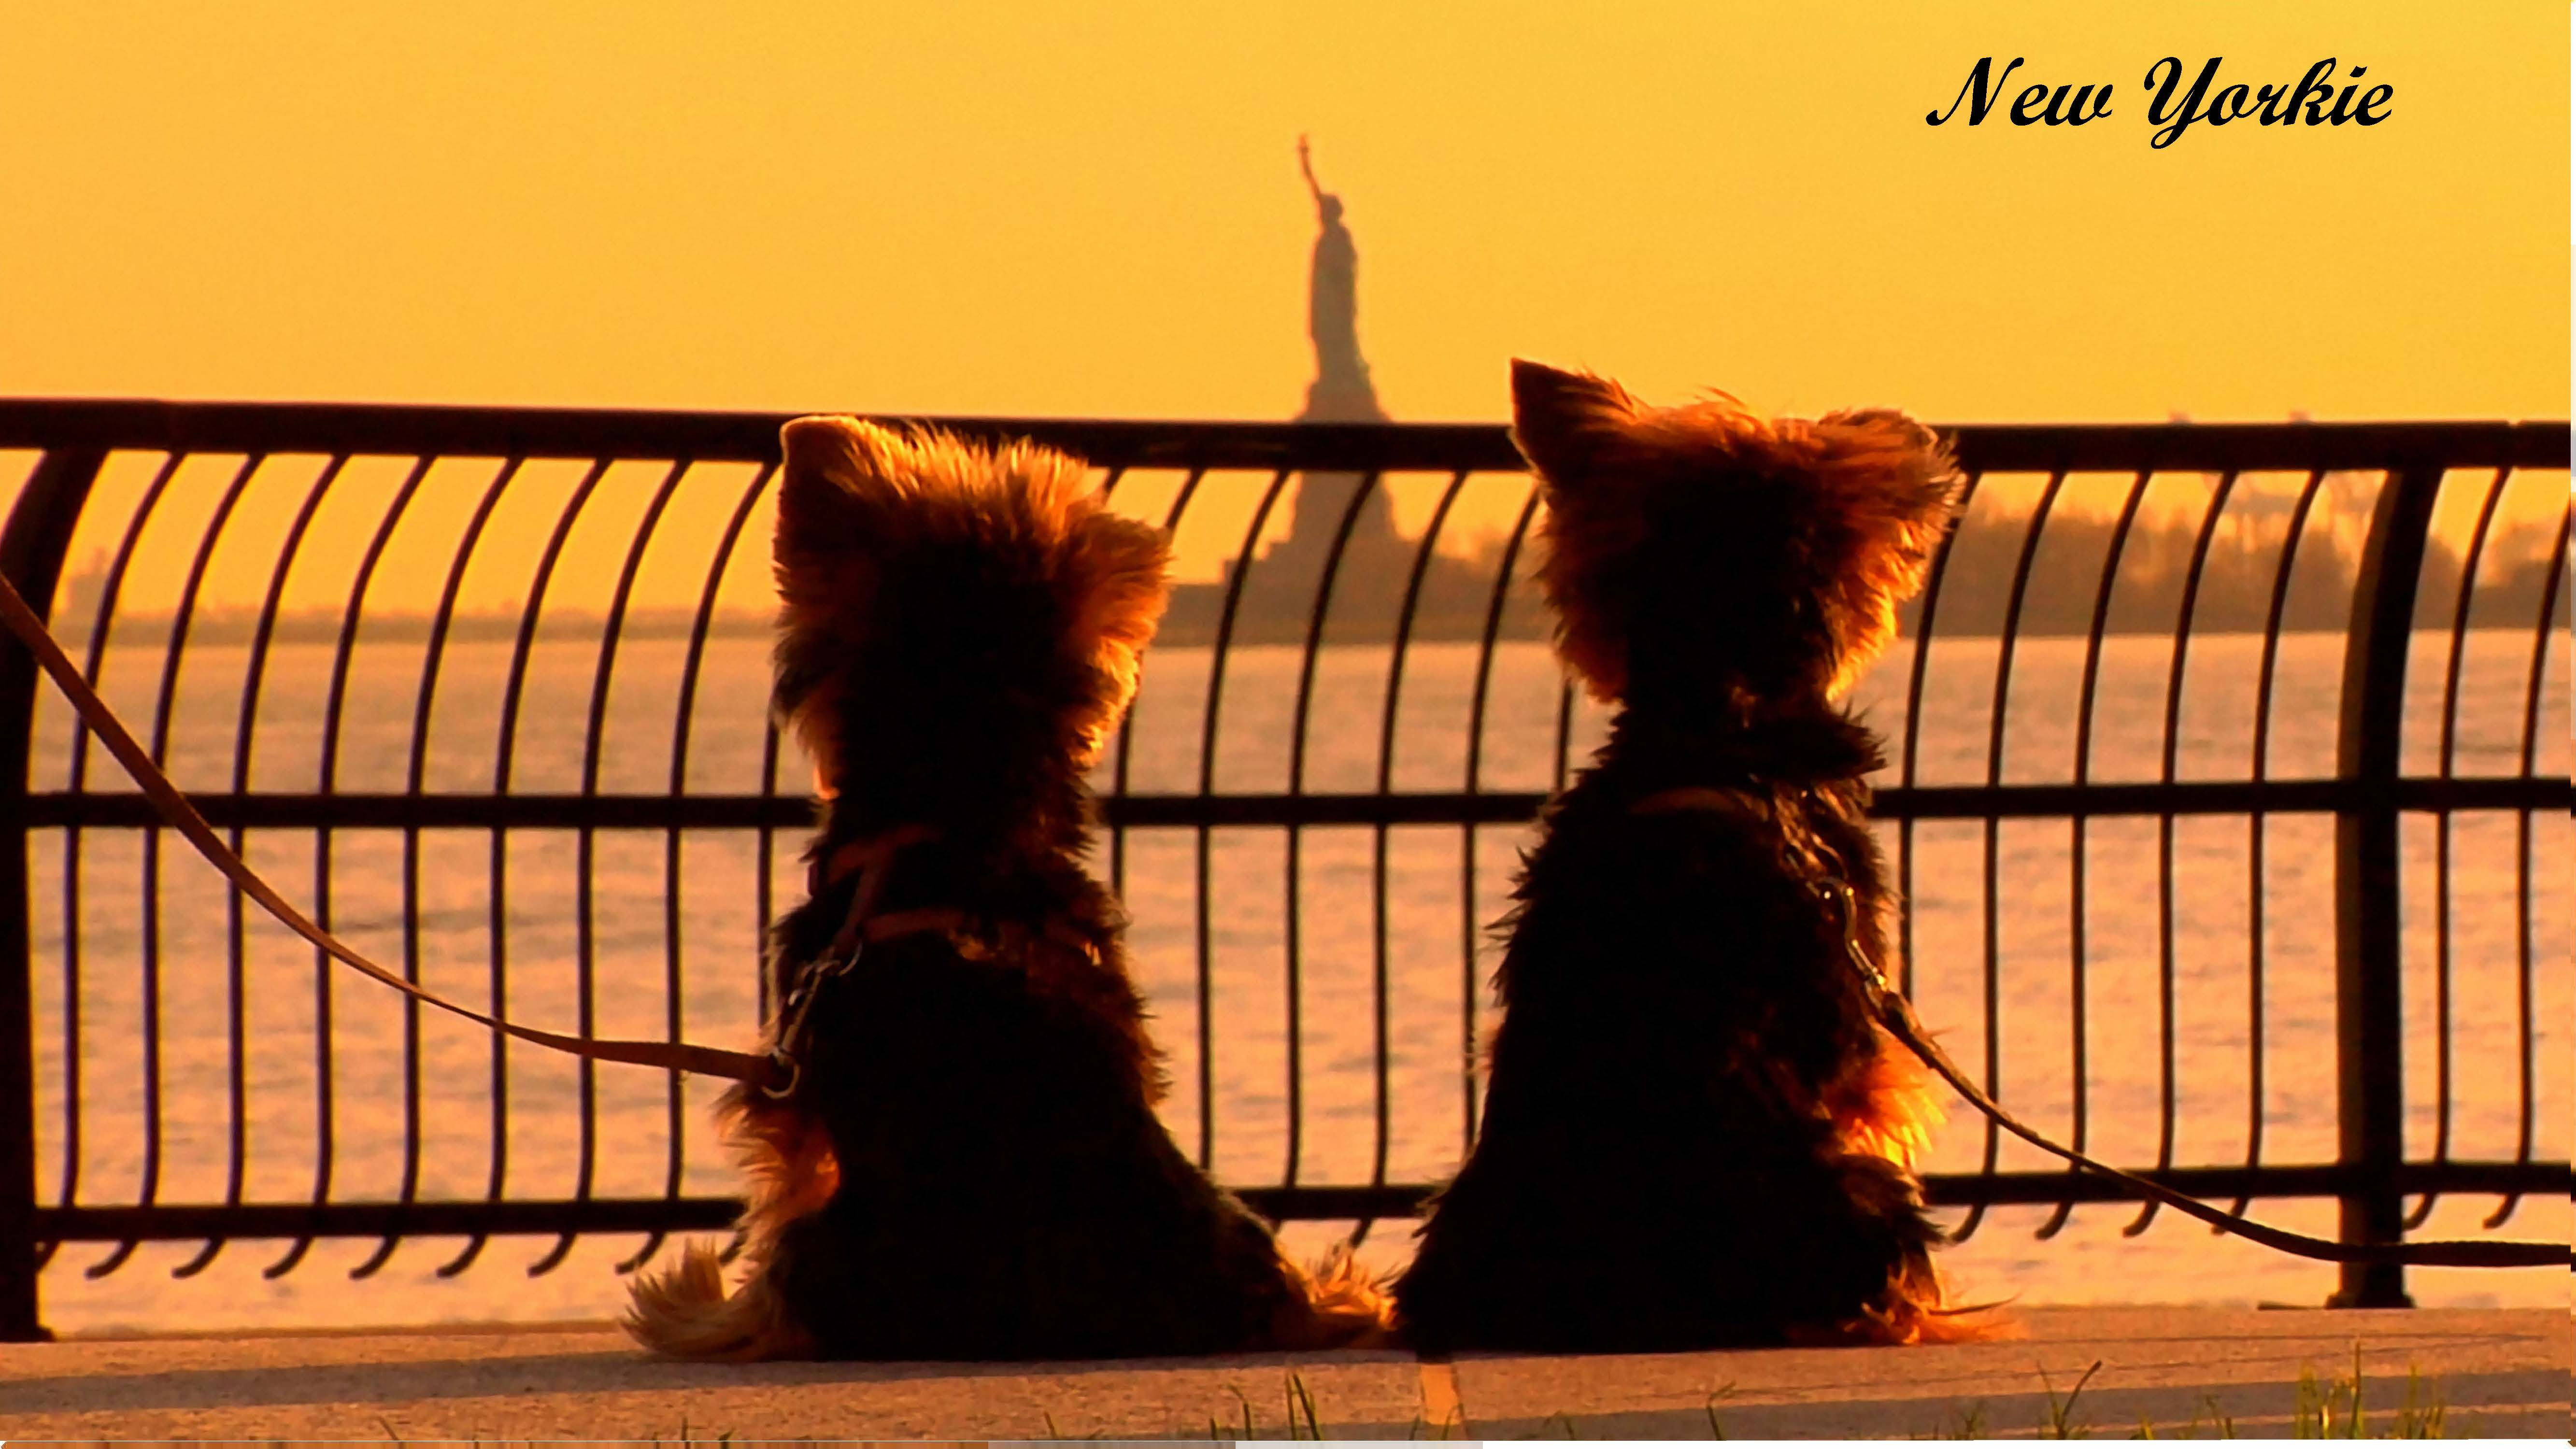 New Yorkie Poster